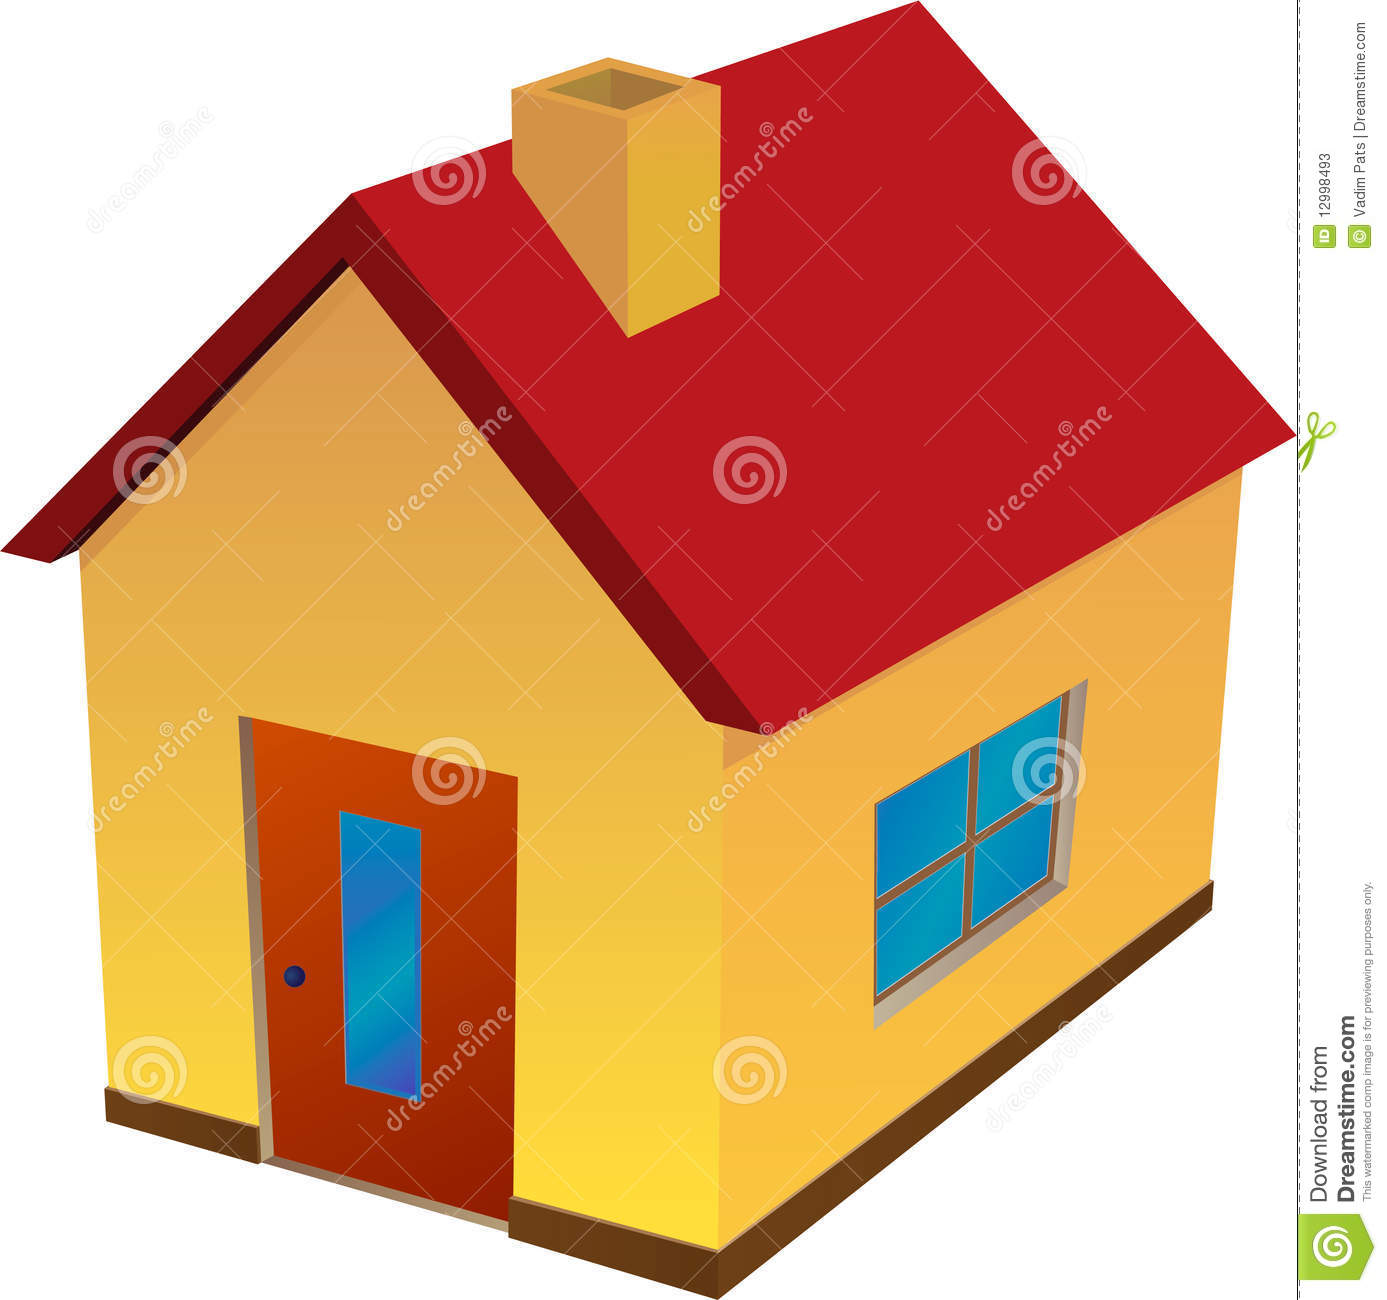 Yellow house with red roof stock photos image 12998493 for Yellow and red house